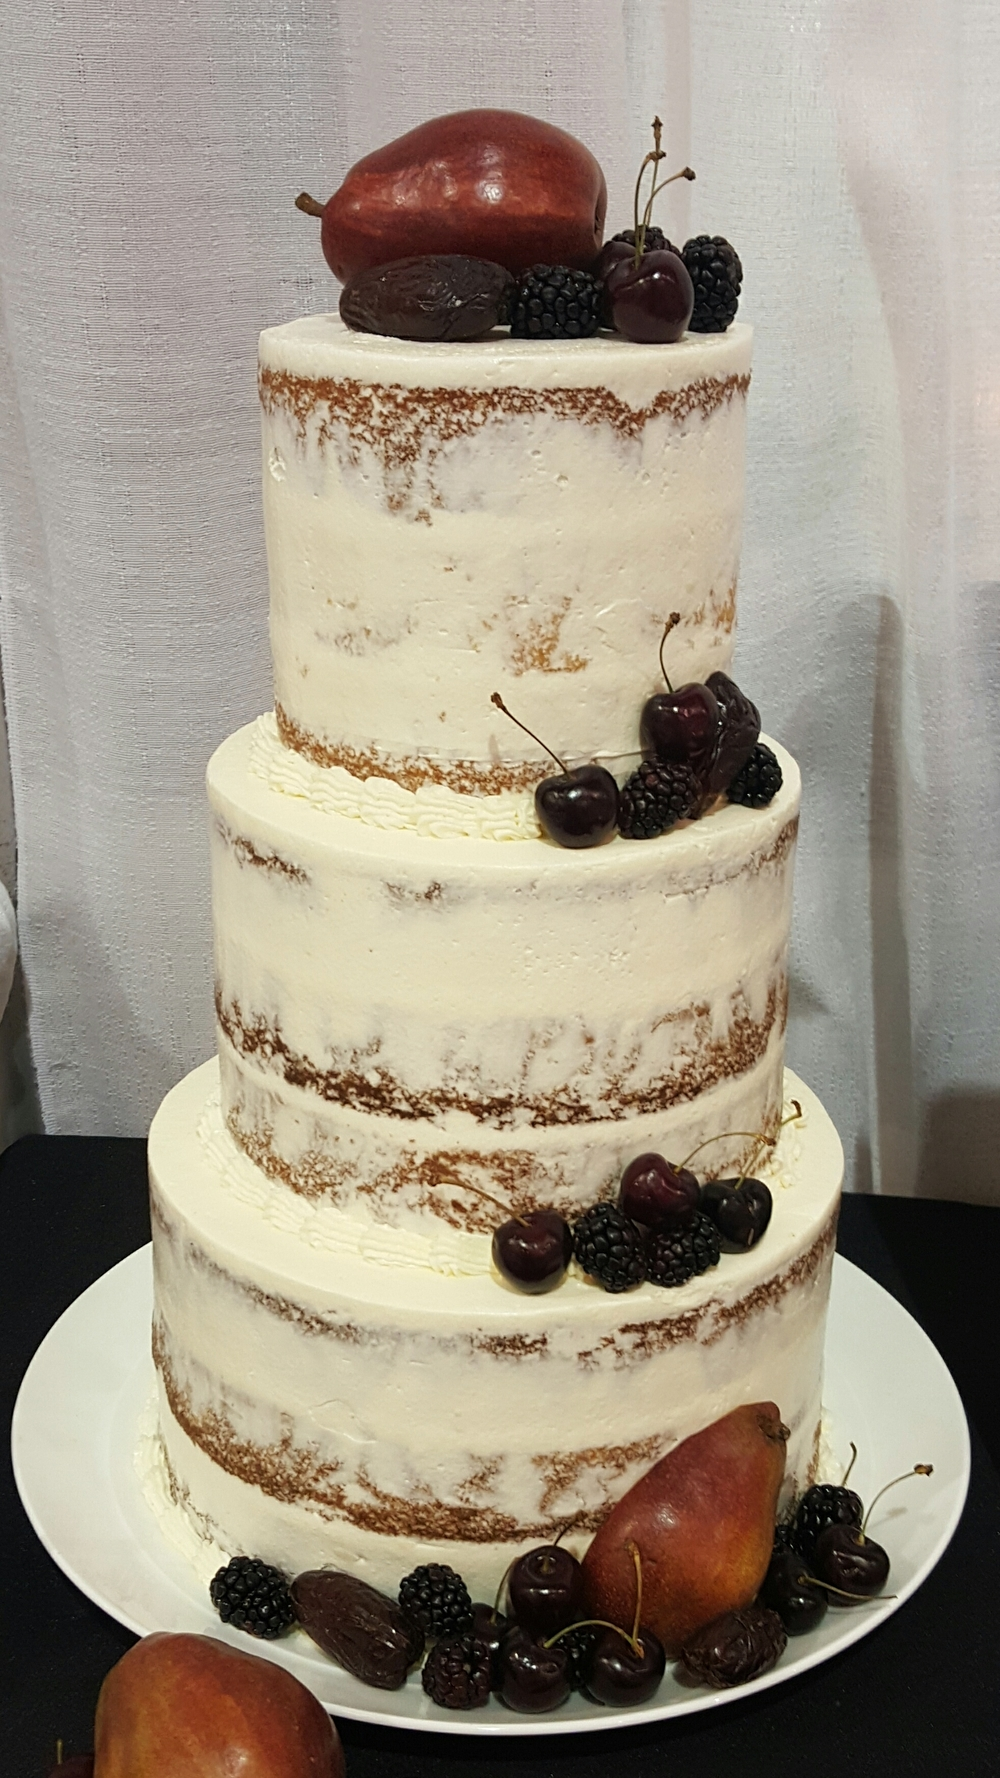 cakes 2016 wedding cake trends fresh baked wedding cake roanoke va